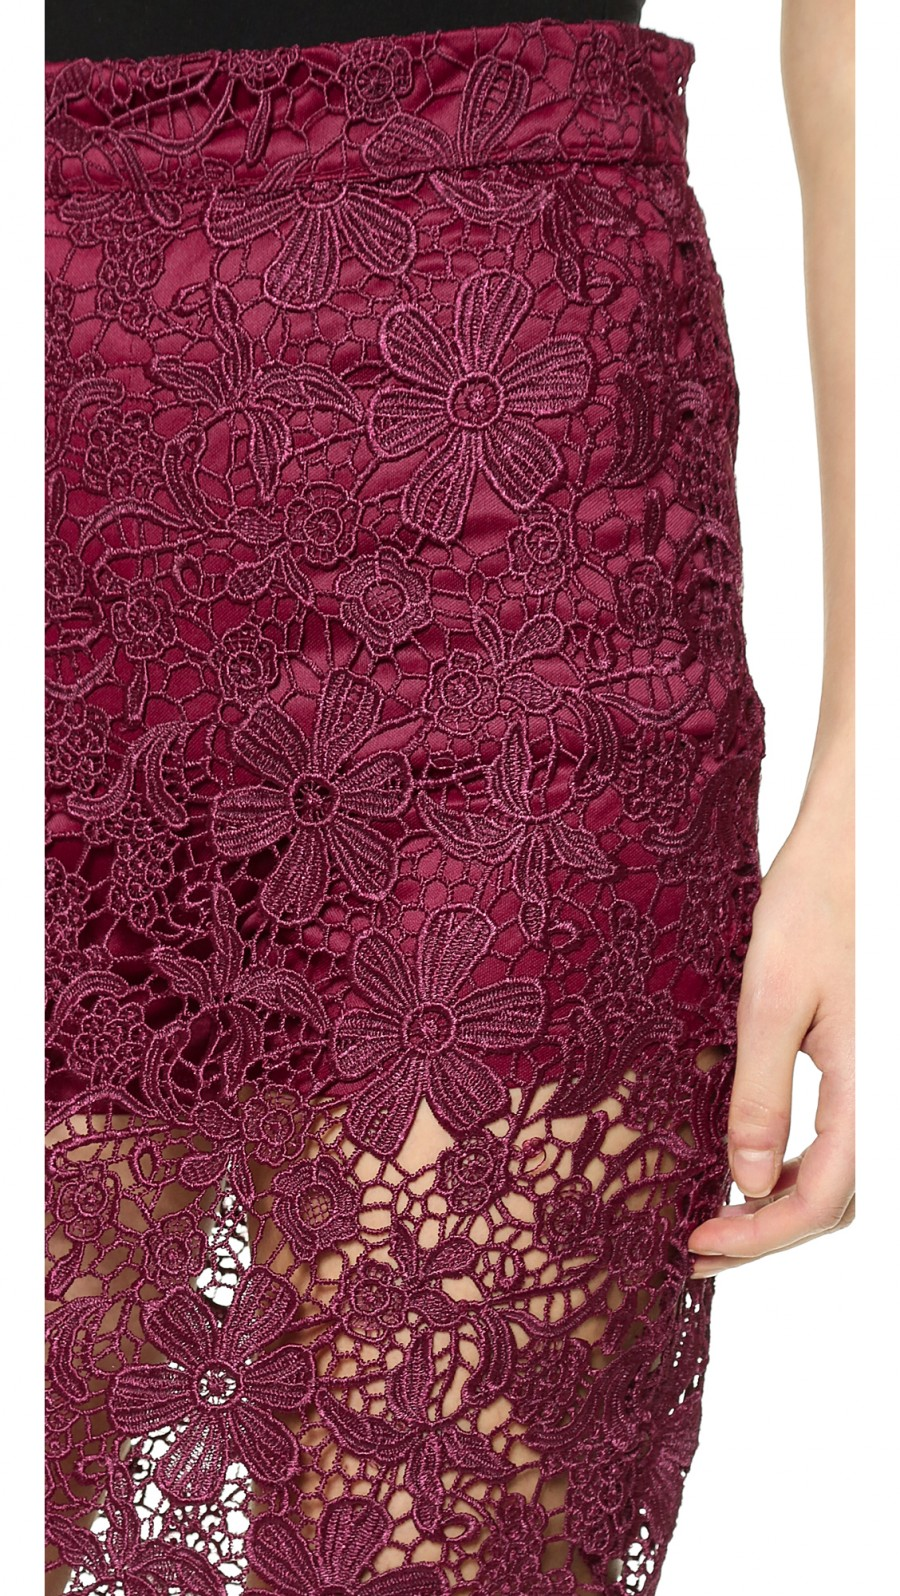 re:named Lace Overlay Skirt Oxblood